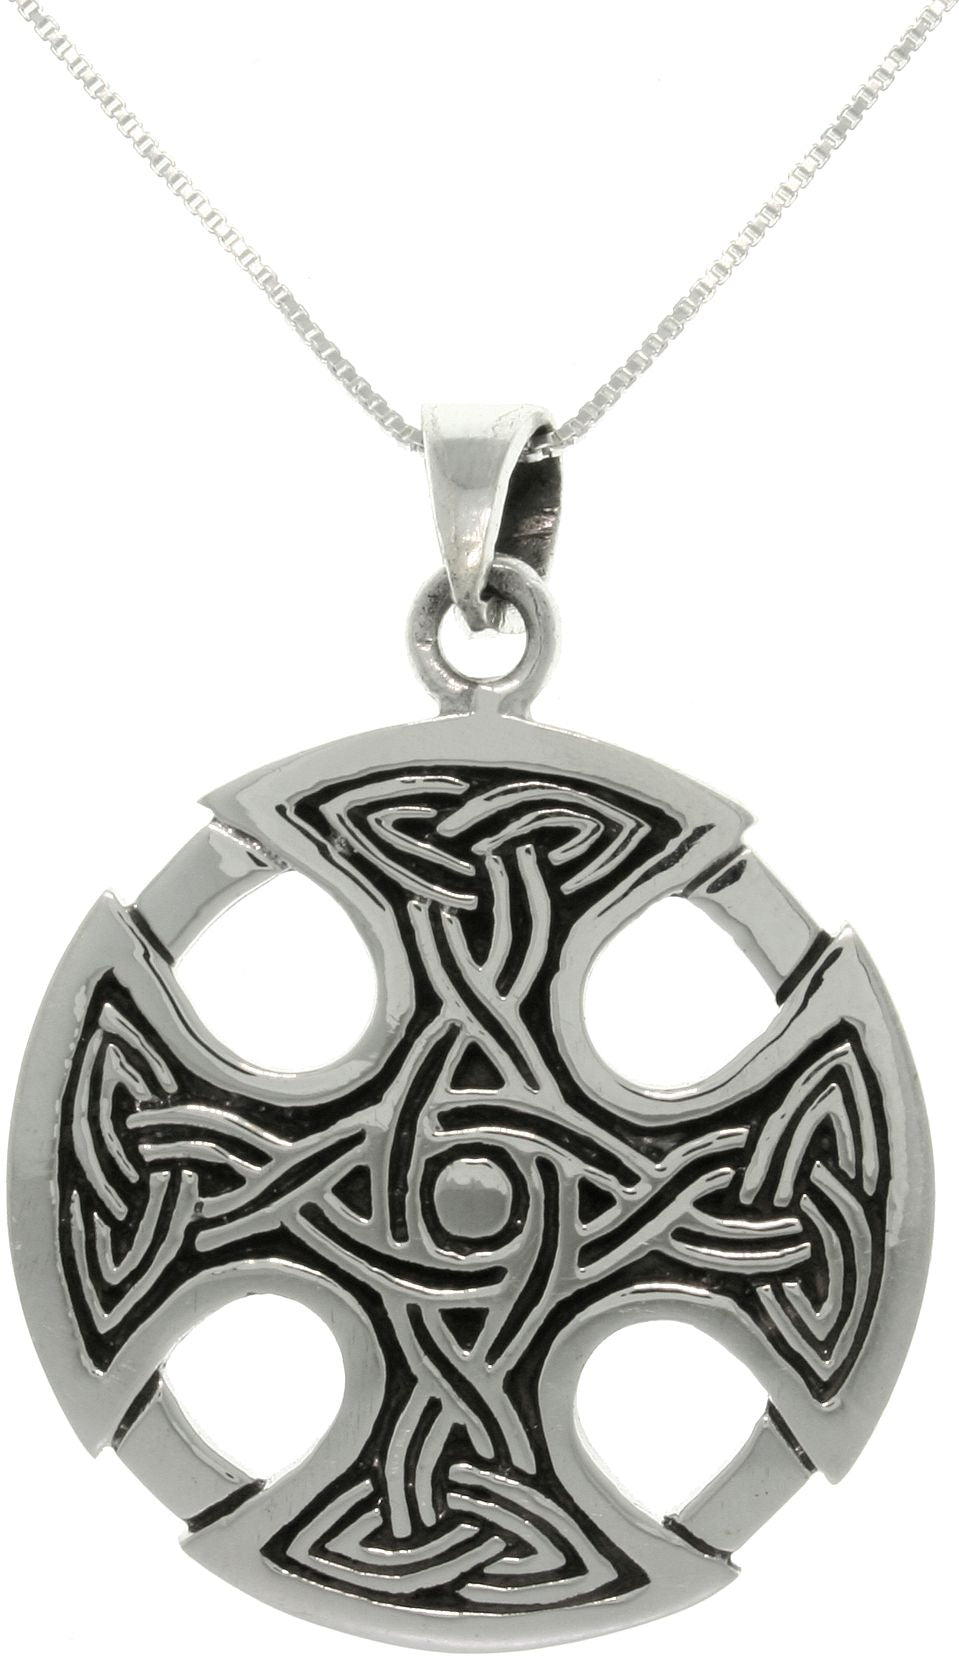 Jewelry Trends Celtic Medallion Cross Sterling Silver Pendant Necklace 18""